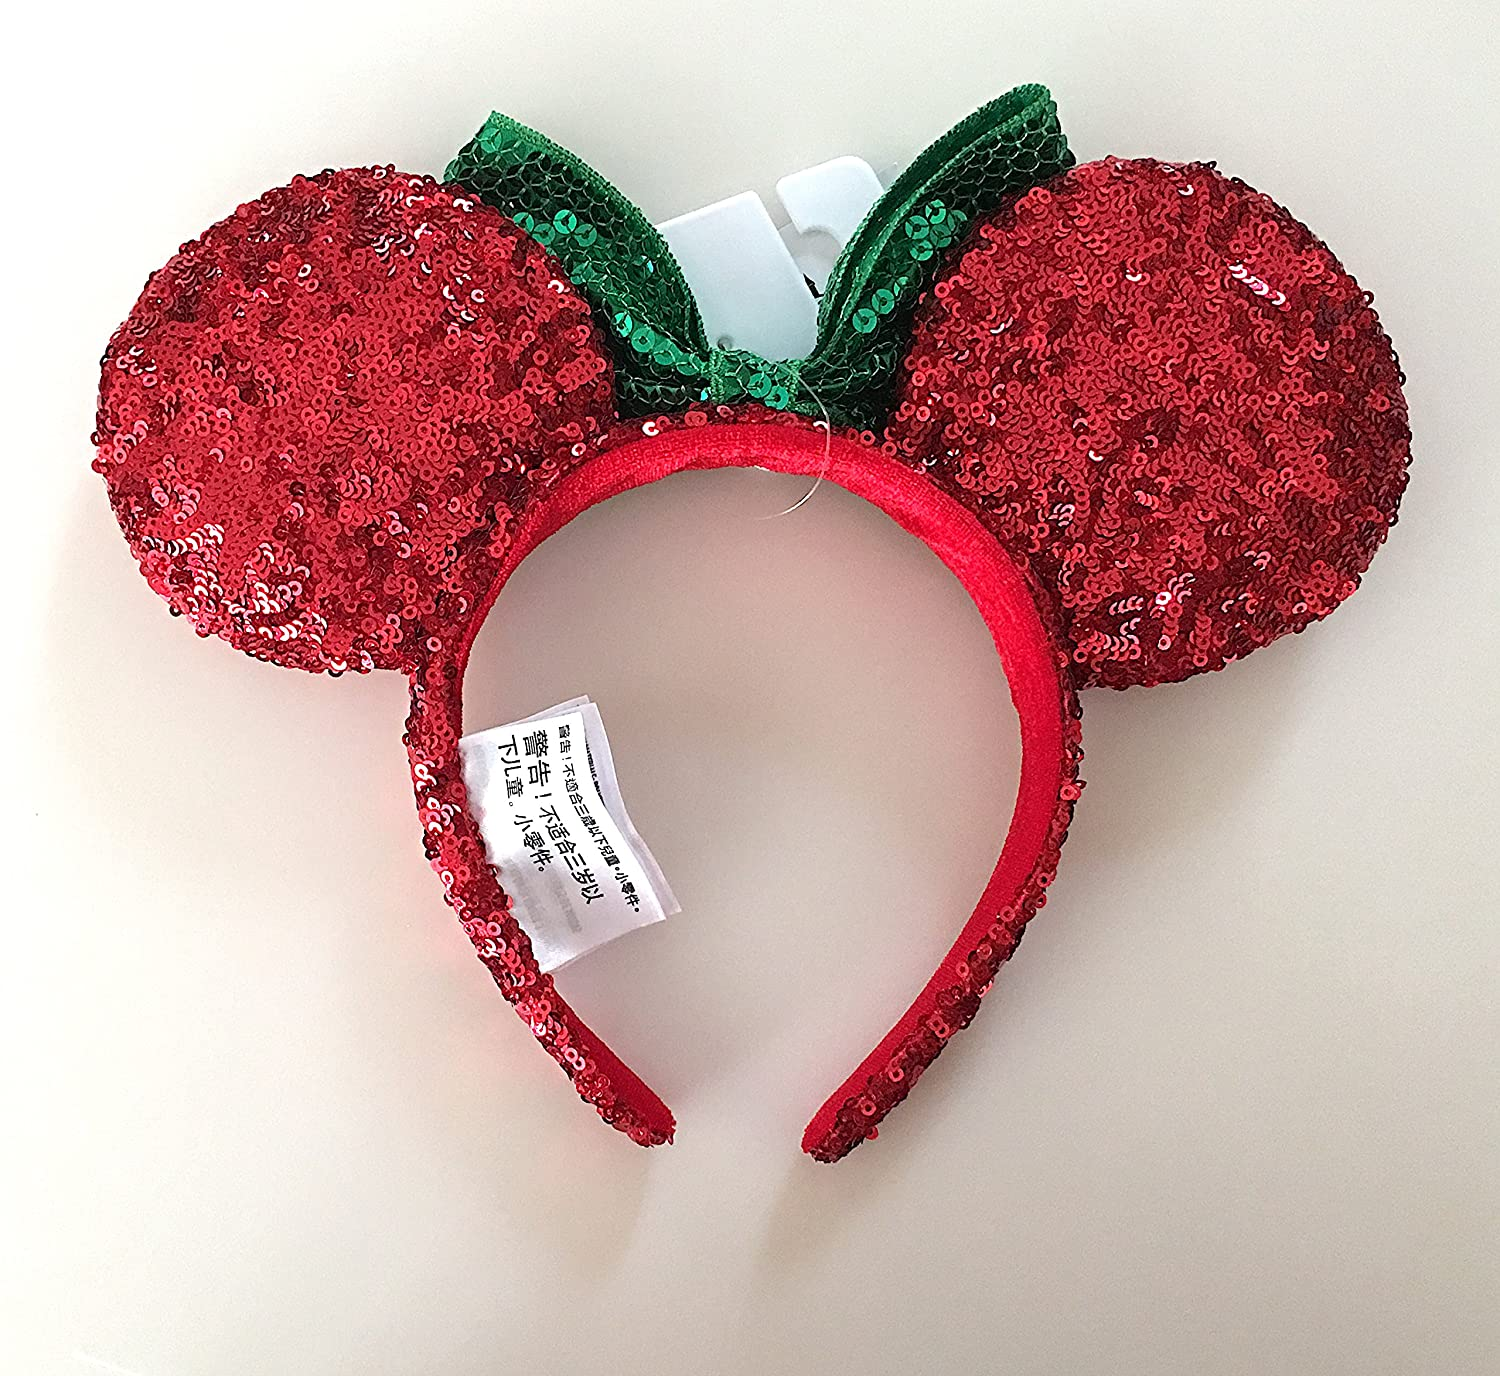 7ef1ec0ef53 Amazon.com  Disney Parks Minnie Mouse Bow Green Red Sequin Ears Headband   Clothing